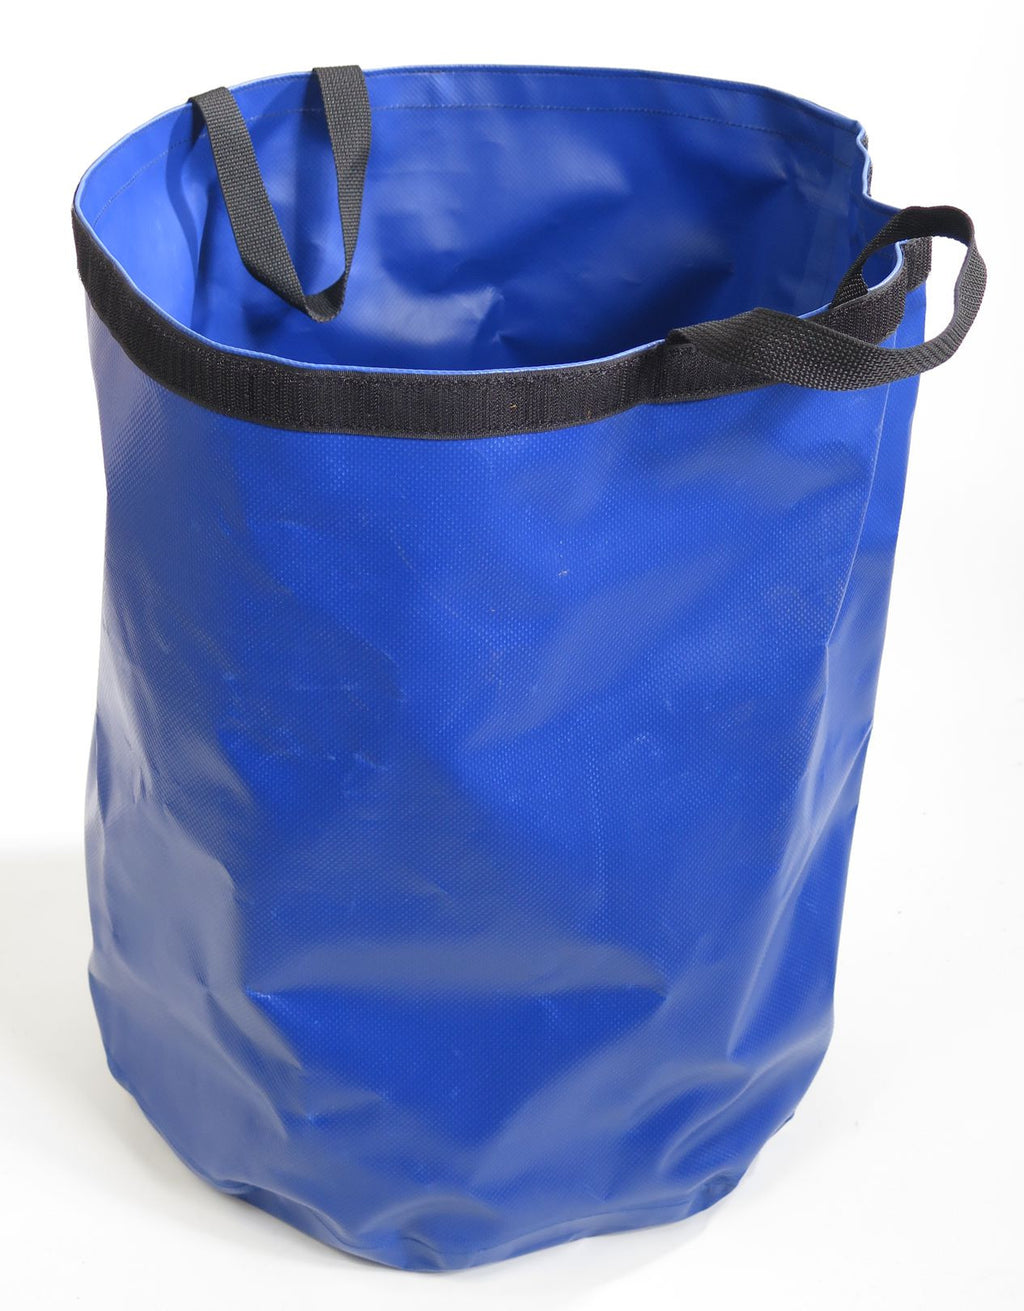 "LUSB006HD Canvas Lift Bucket, 200# Load, 16"" dia x 20"" tall"